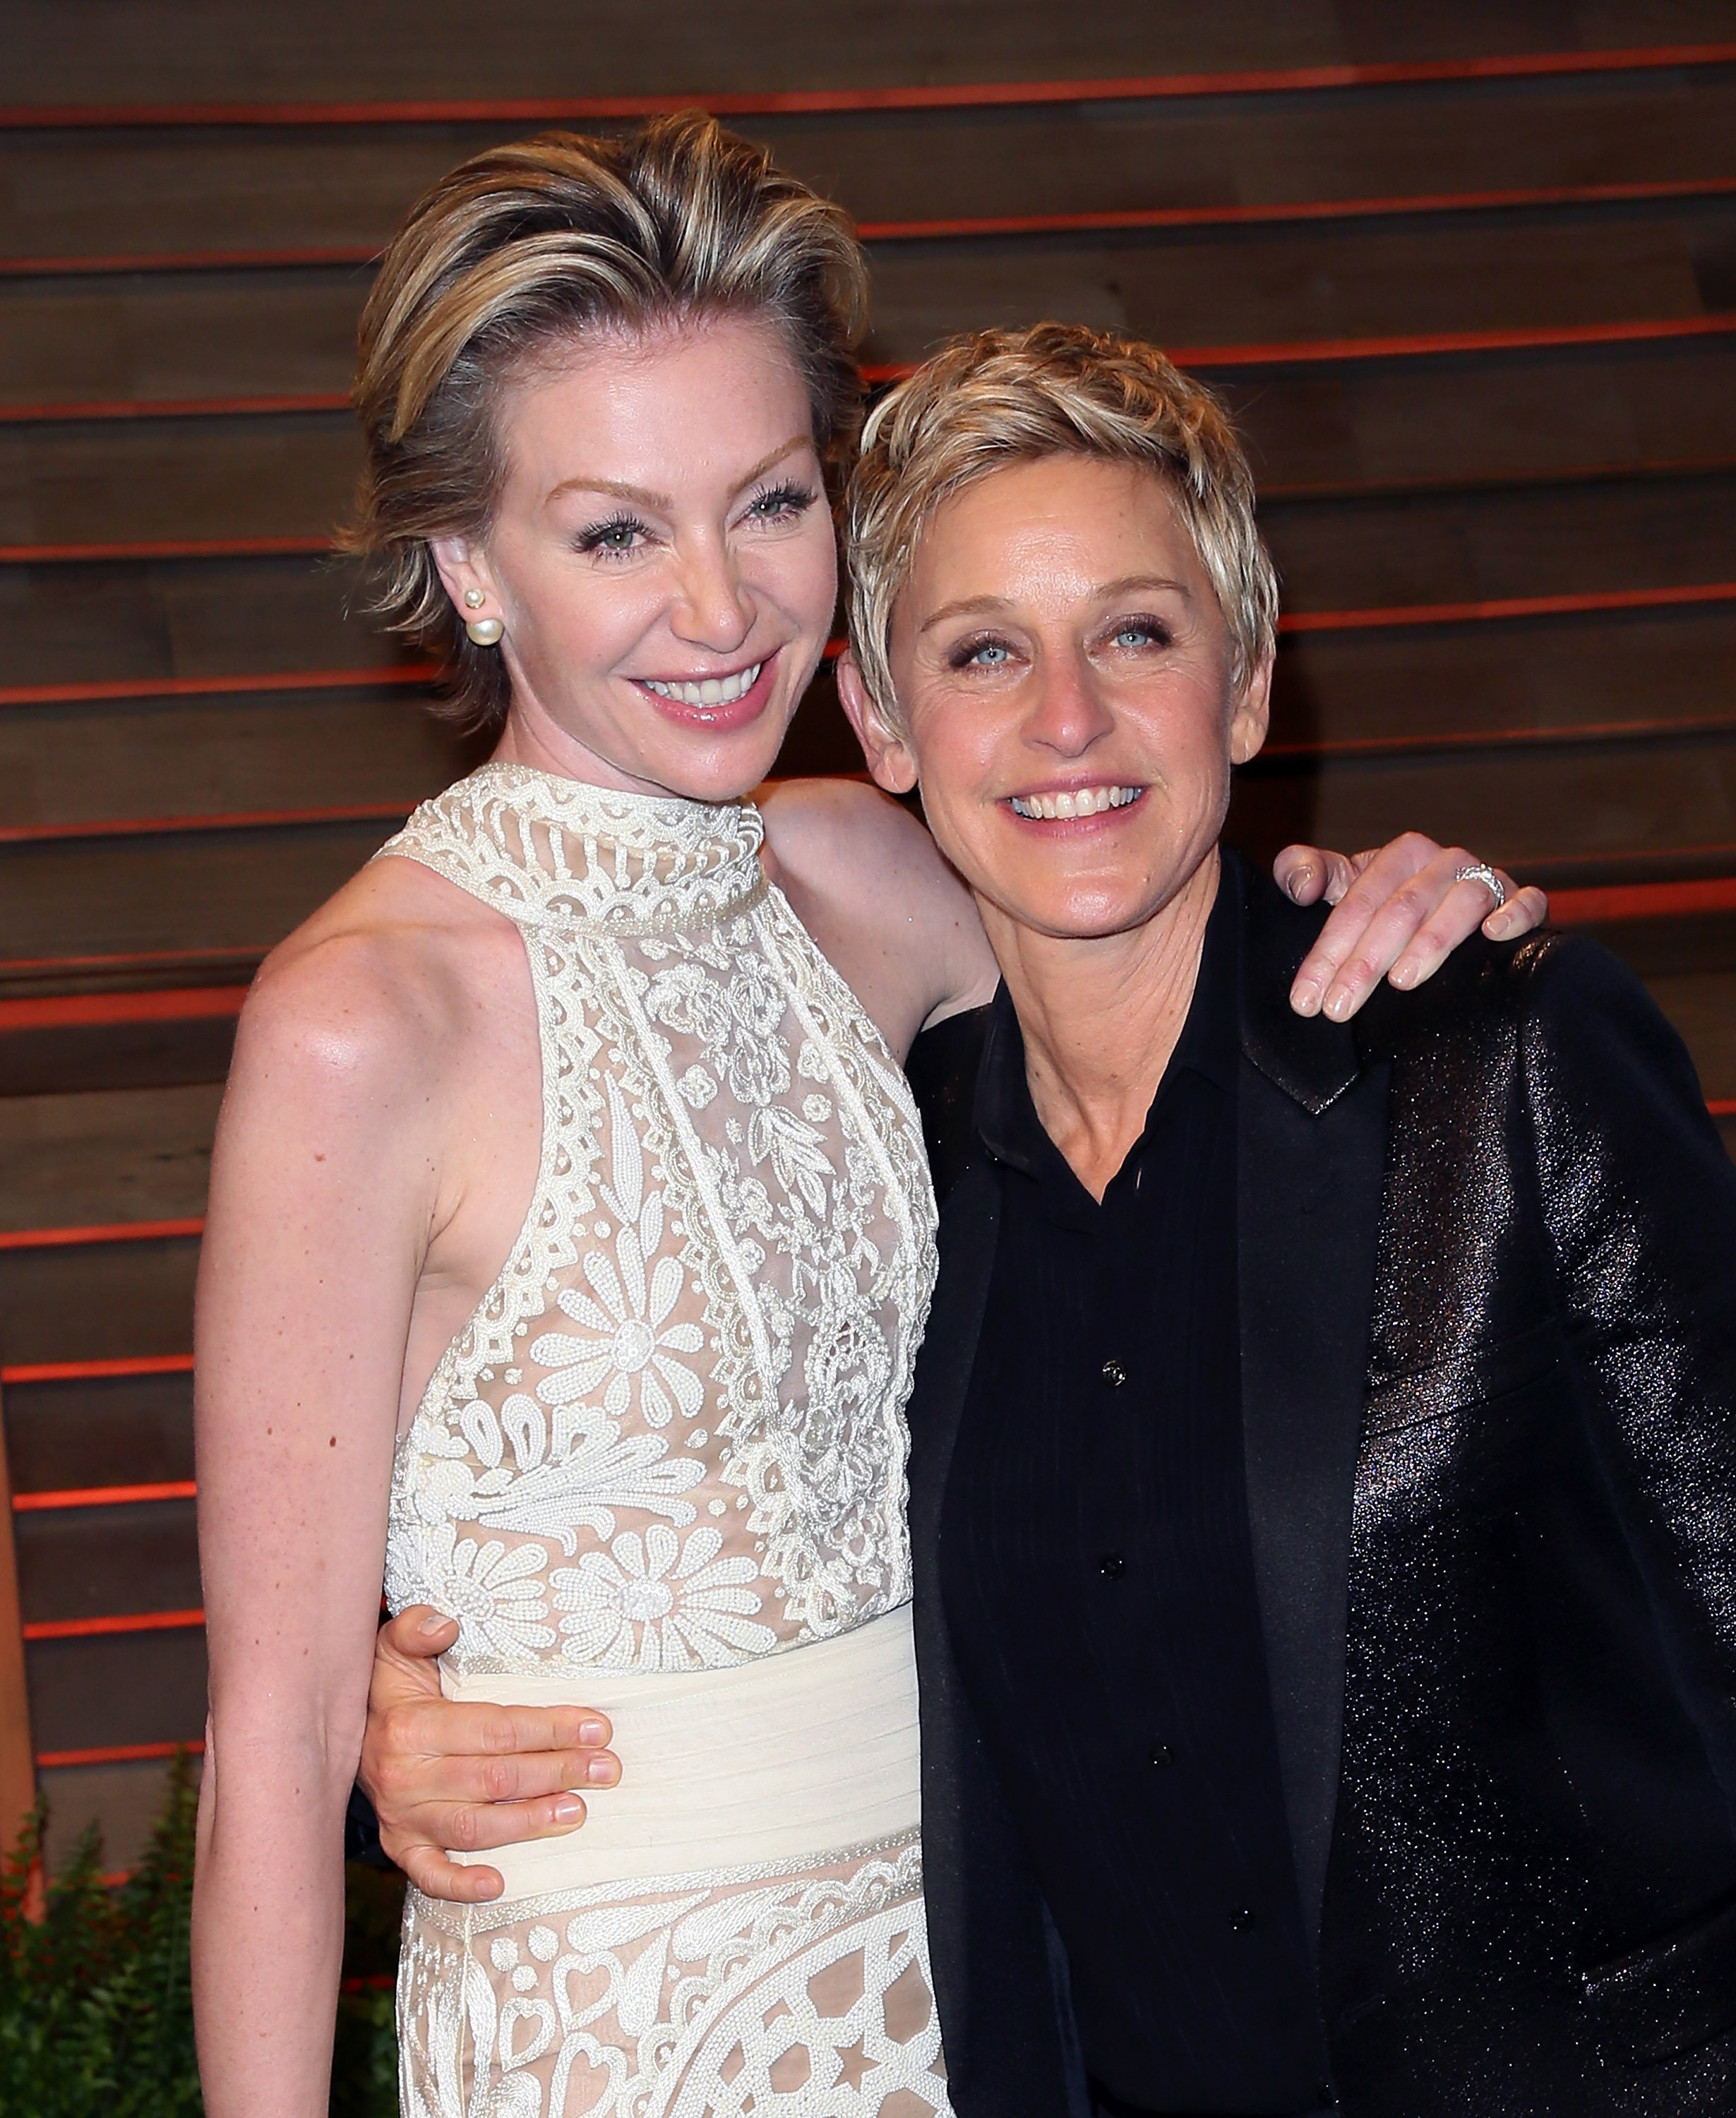 Ellen DeGeneres (R) and spouse actress Portia de Rossi attend the 2014 Vanity Fair Oscar Party hosted by Graydon Carter on March 2, 2014, in West Hollywood, California. | Source: Getty Images.